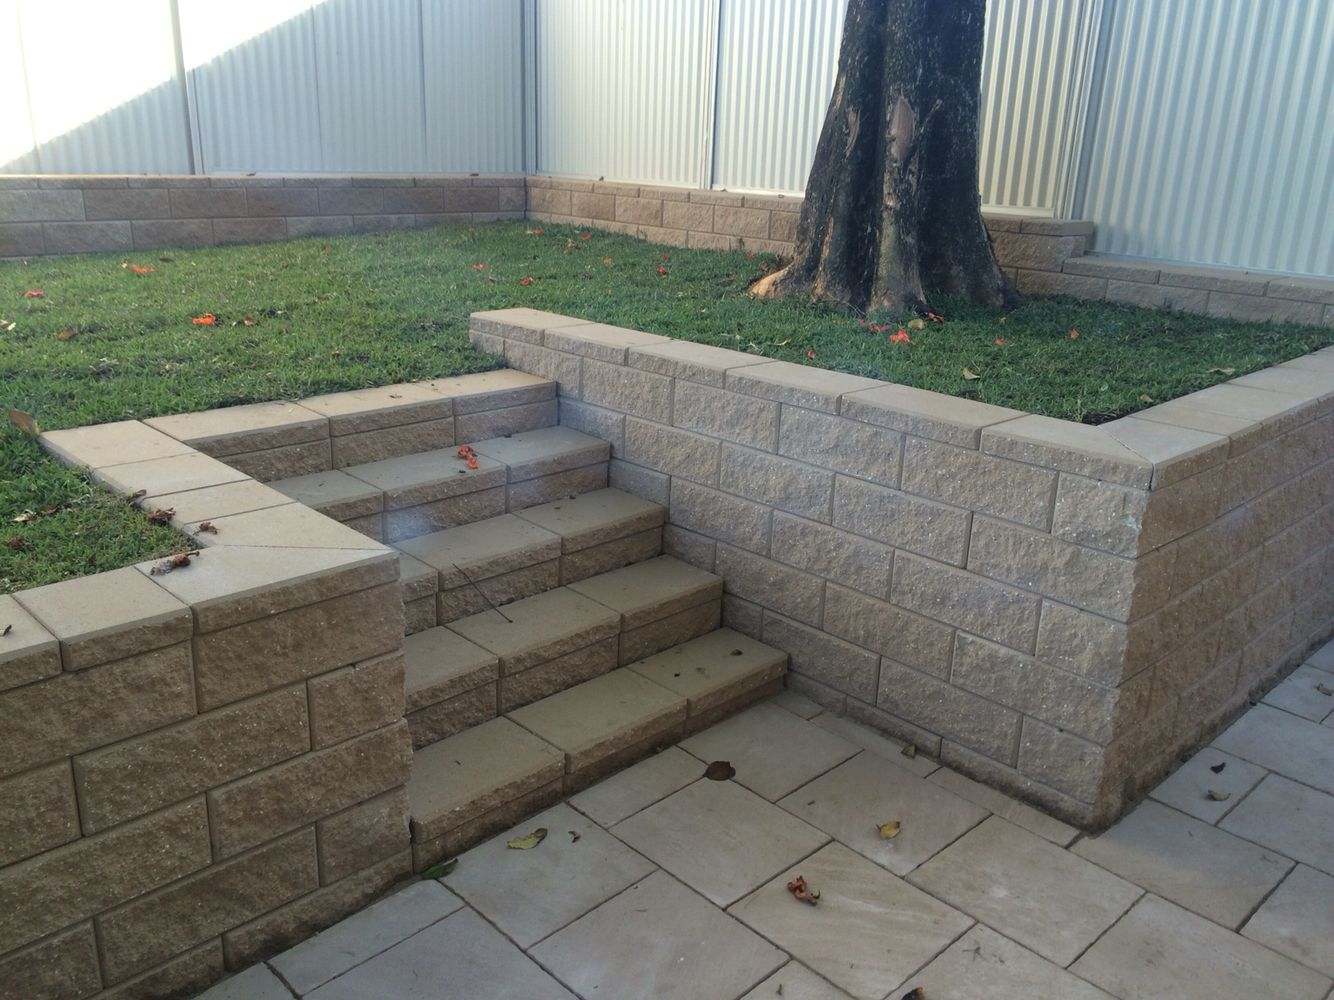 Moderstone Retaining Wall Blocks With Stairs, Sandstone Style Conc Pavers